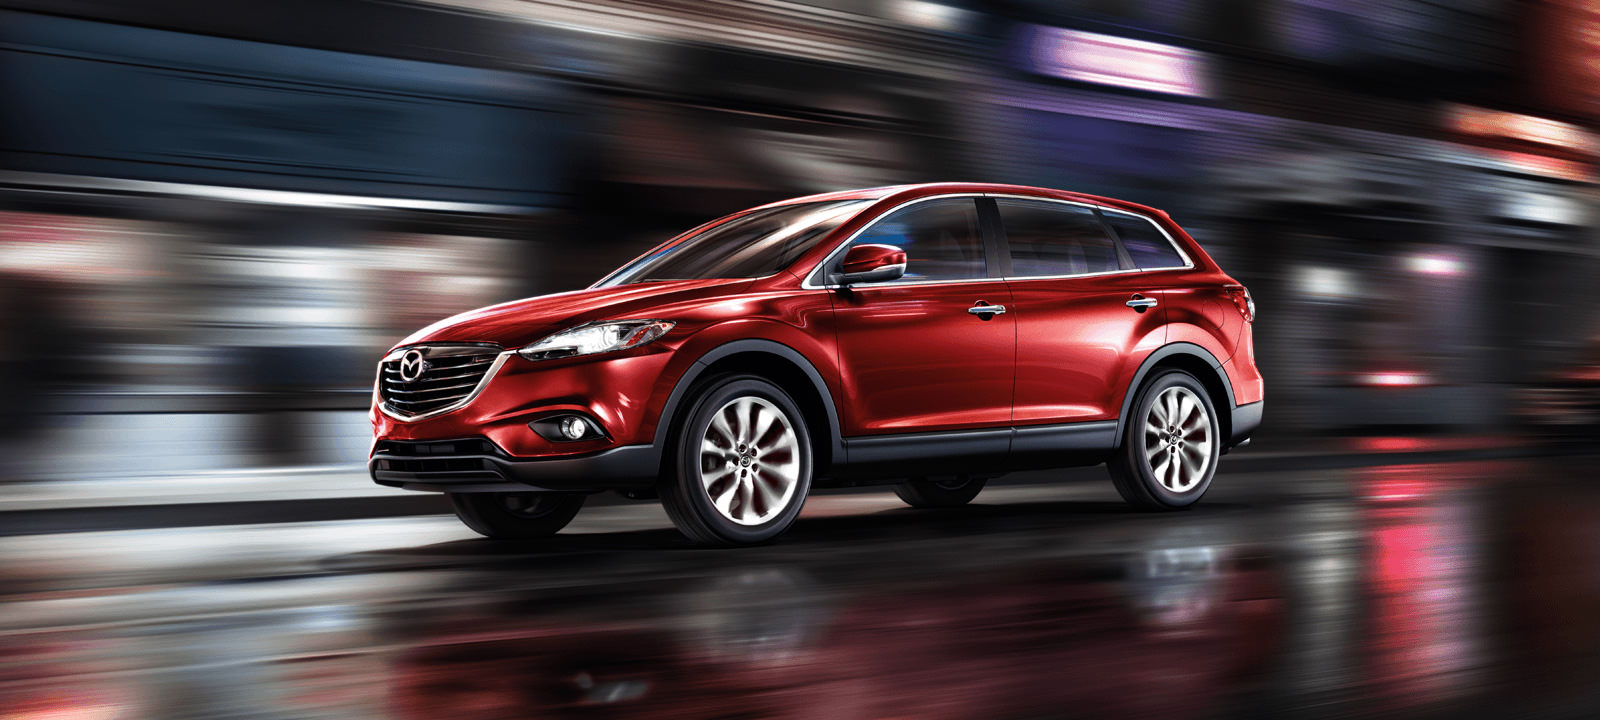 stay safe within the 2015 mazda cx-9